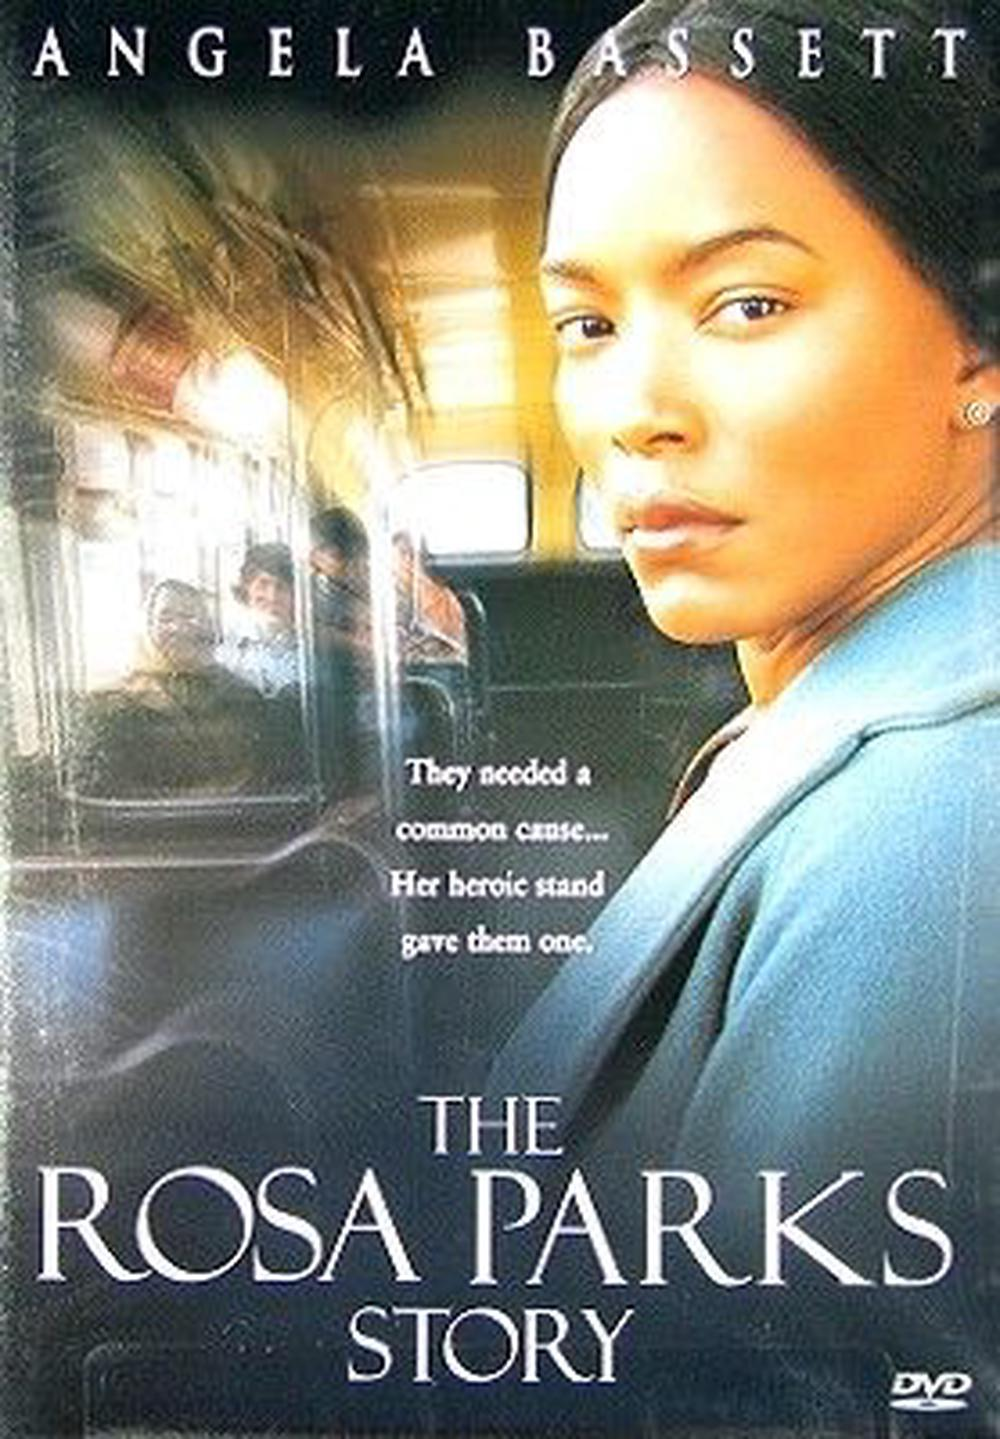 Rosa Parks Story Dvd Buy Online At The Nile